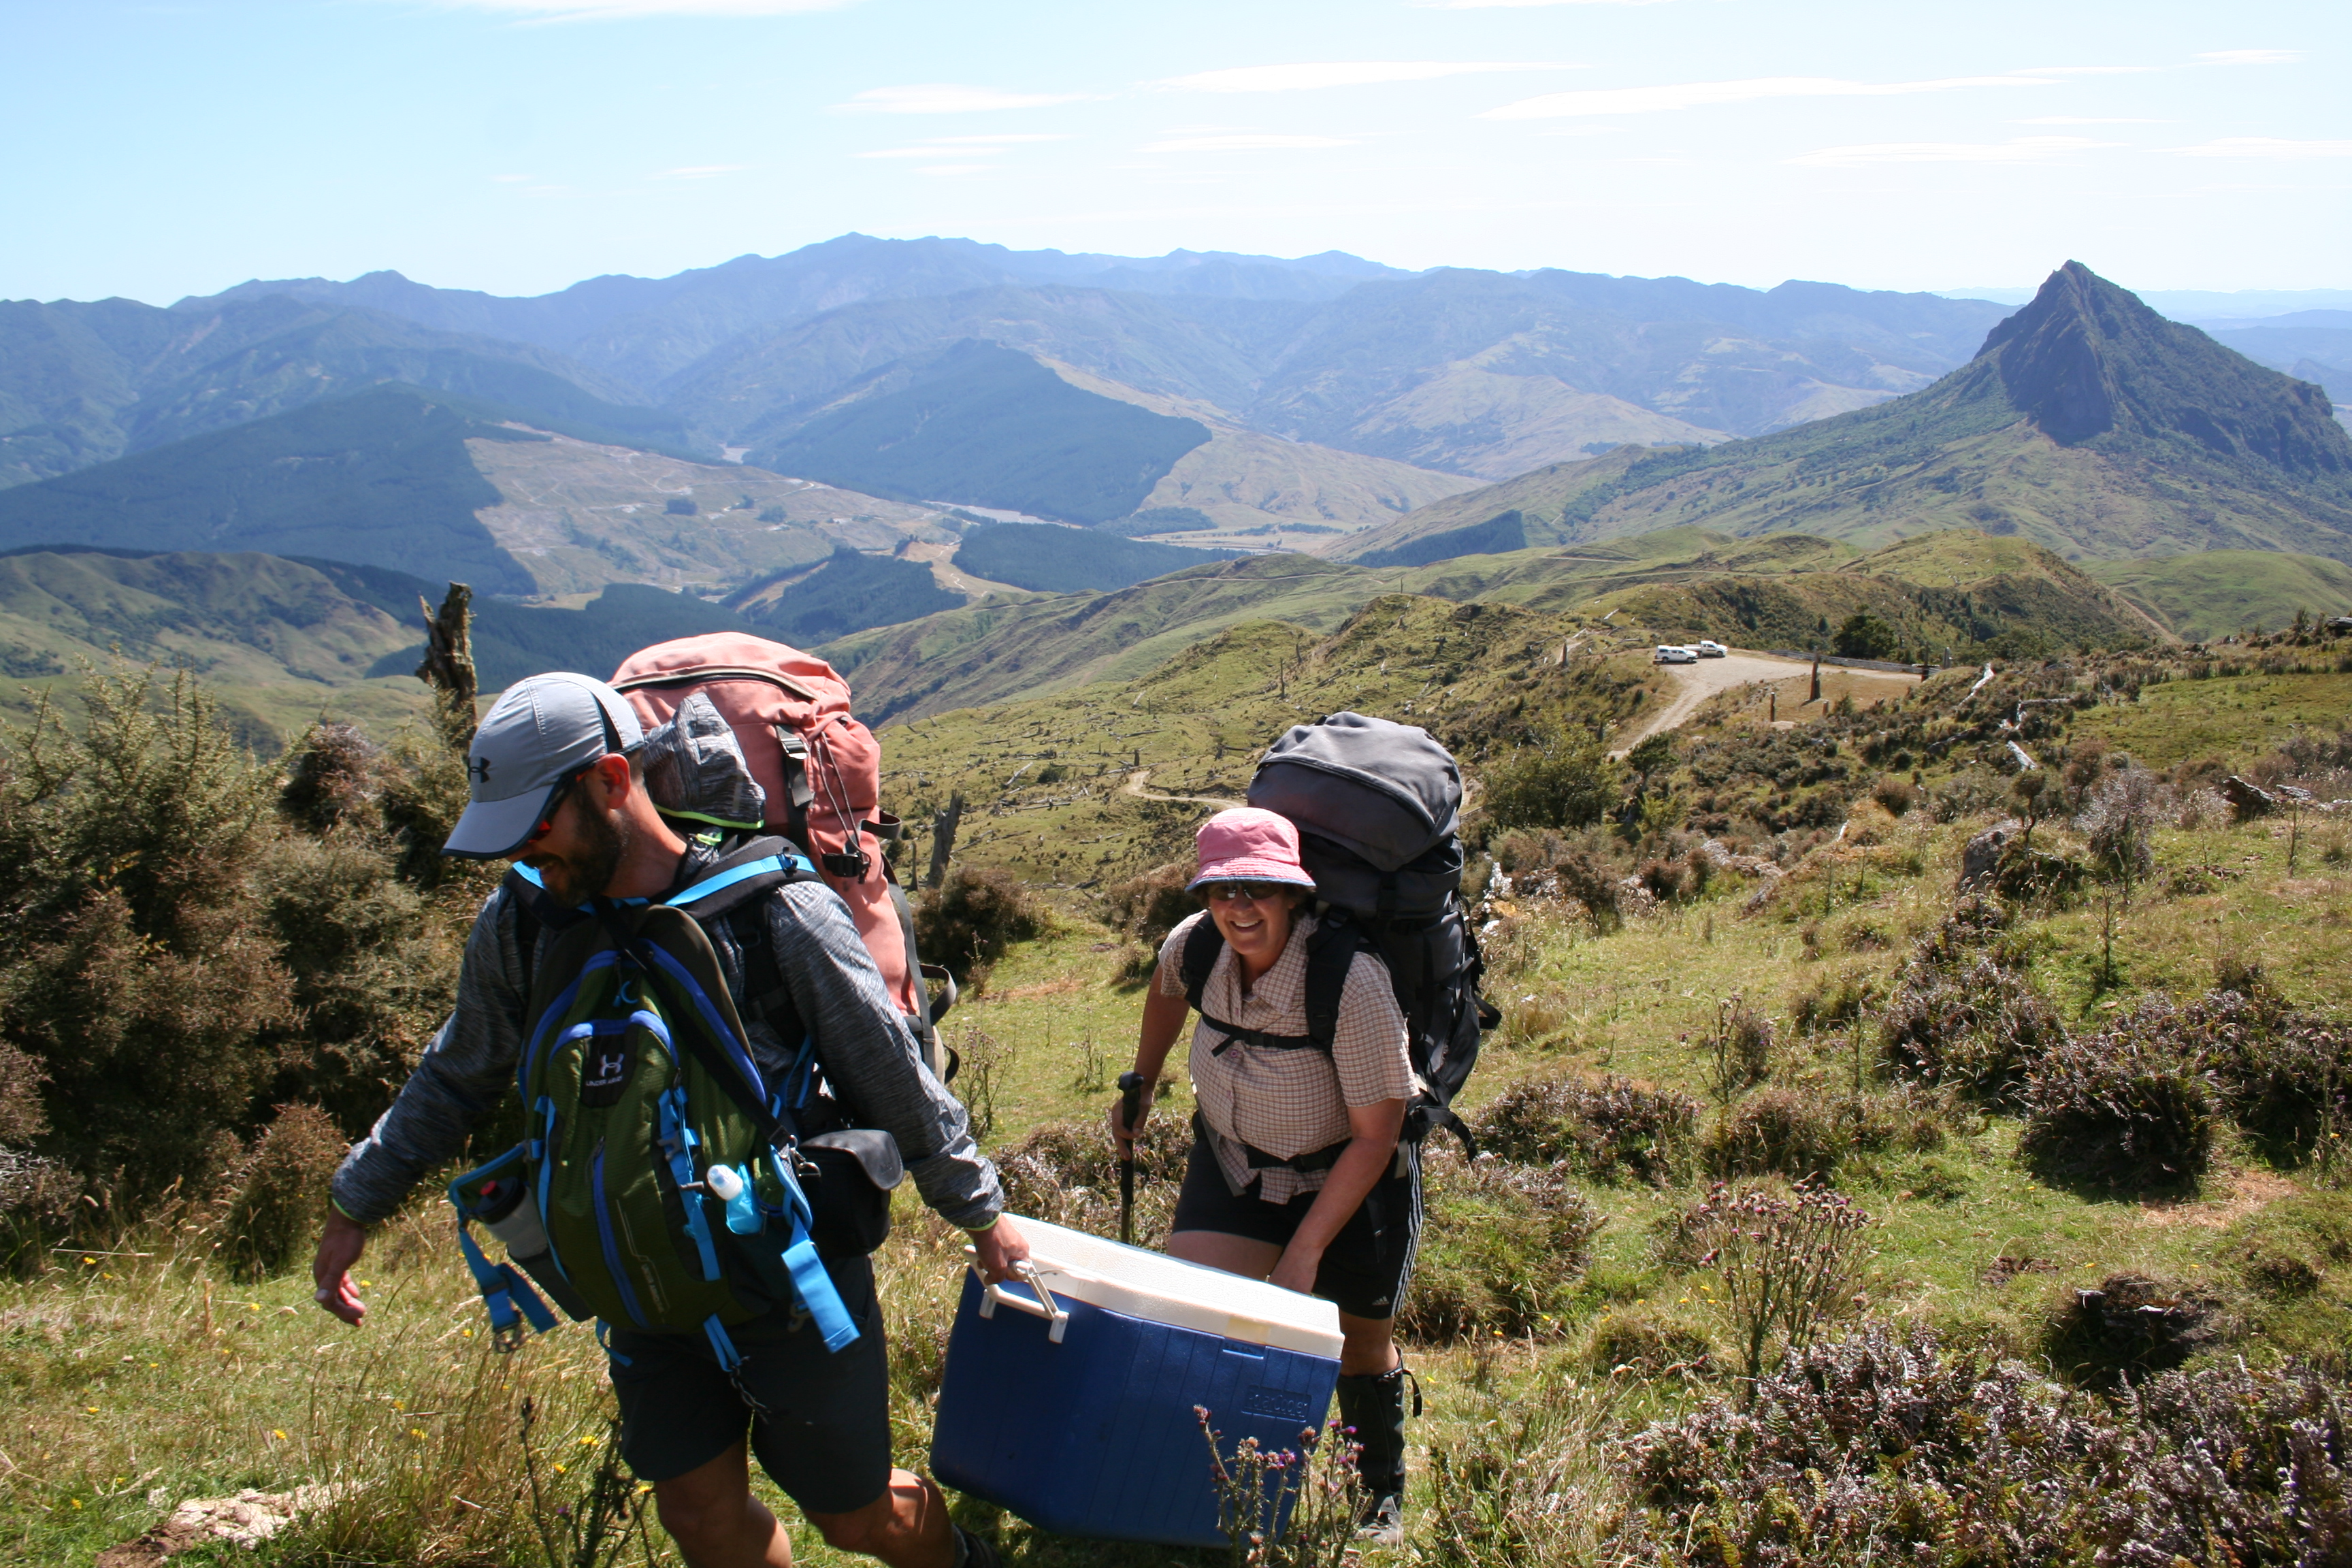 Santiago and Kerry carrying some of our gear from the vehicles up to Hikurangi Hut, where we would stay for two nights. 30 Jan 2020. Photo by Heidi Meudt @ Te Papa.